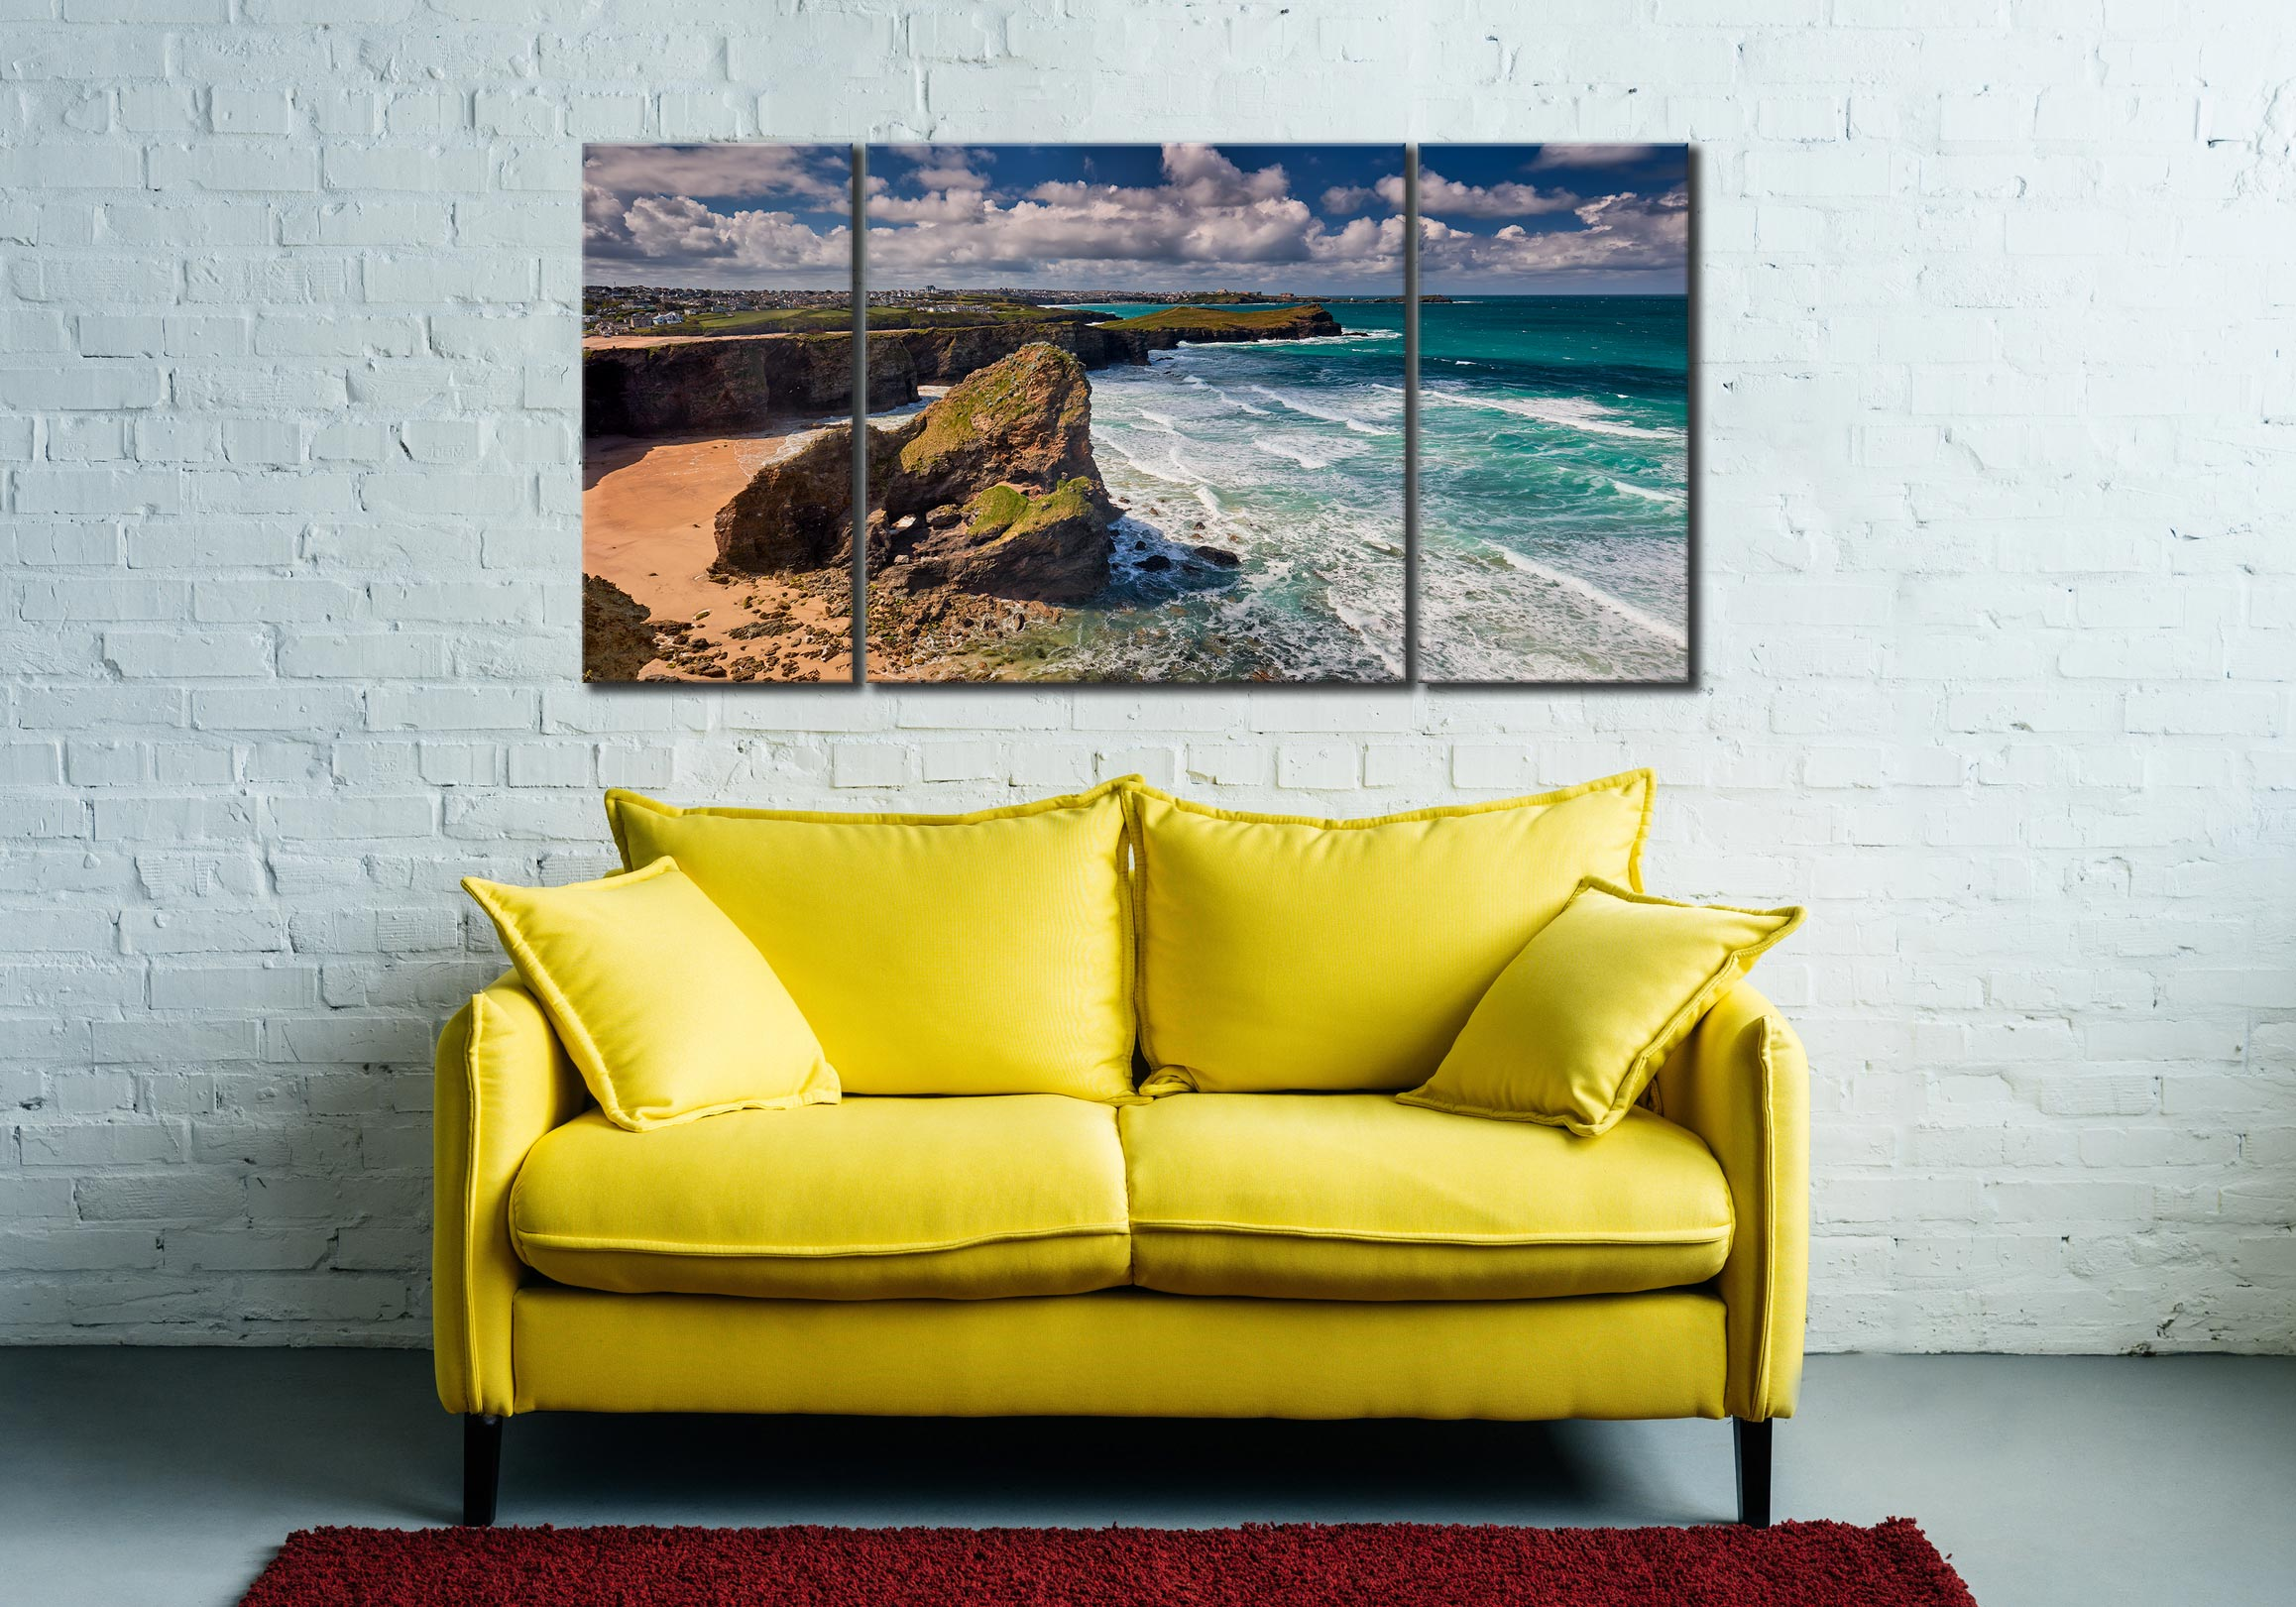 Black Humprey Rock - 3 Panel Wide Centre Canvas on Wall